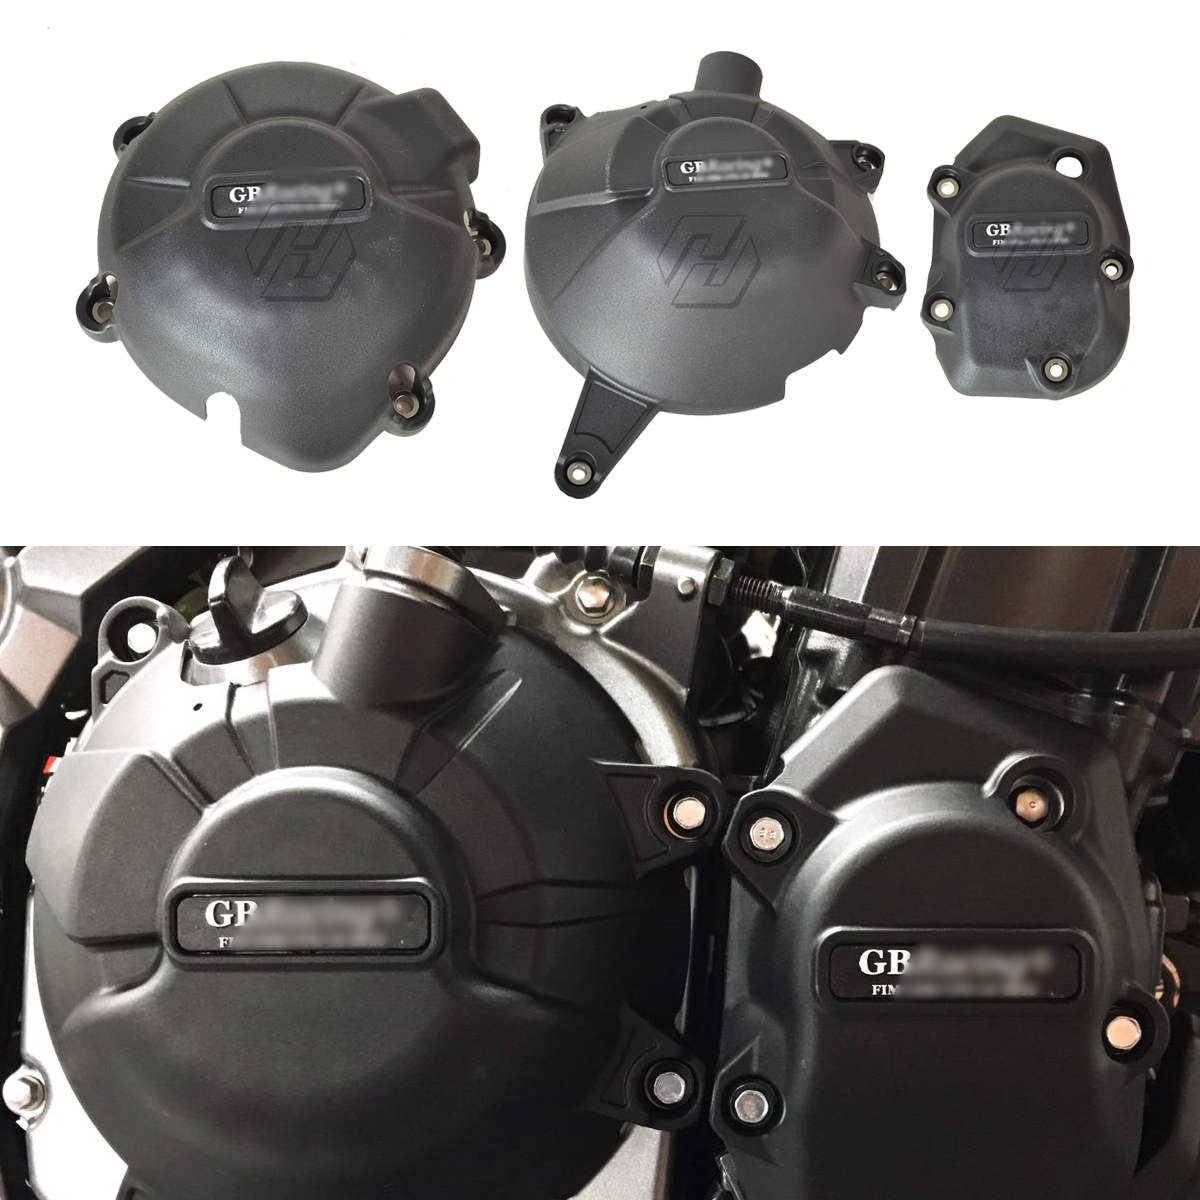 Image 2 - Motorcycle Engine Protection Water Pump Cover Kit Case for GB Racing for Kawasaki NINJA Z900 2017 2018 2019-in Covers & Ornamental Mouldings from Automobiles & Motorcycles